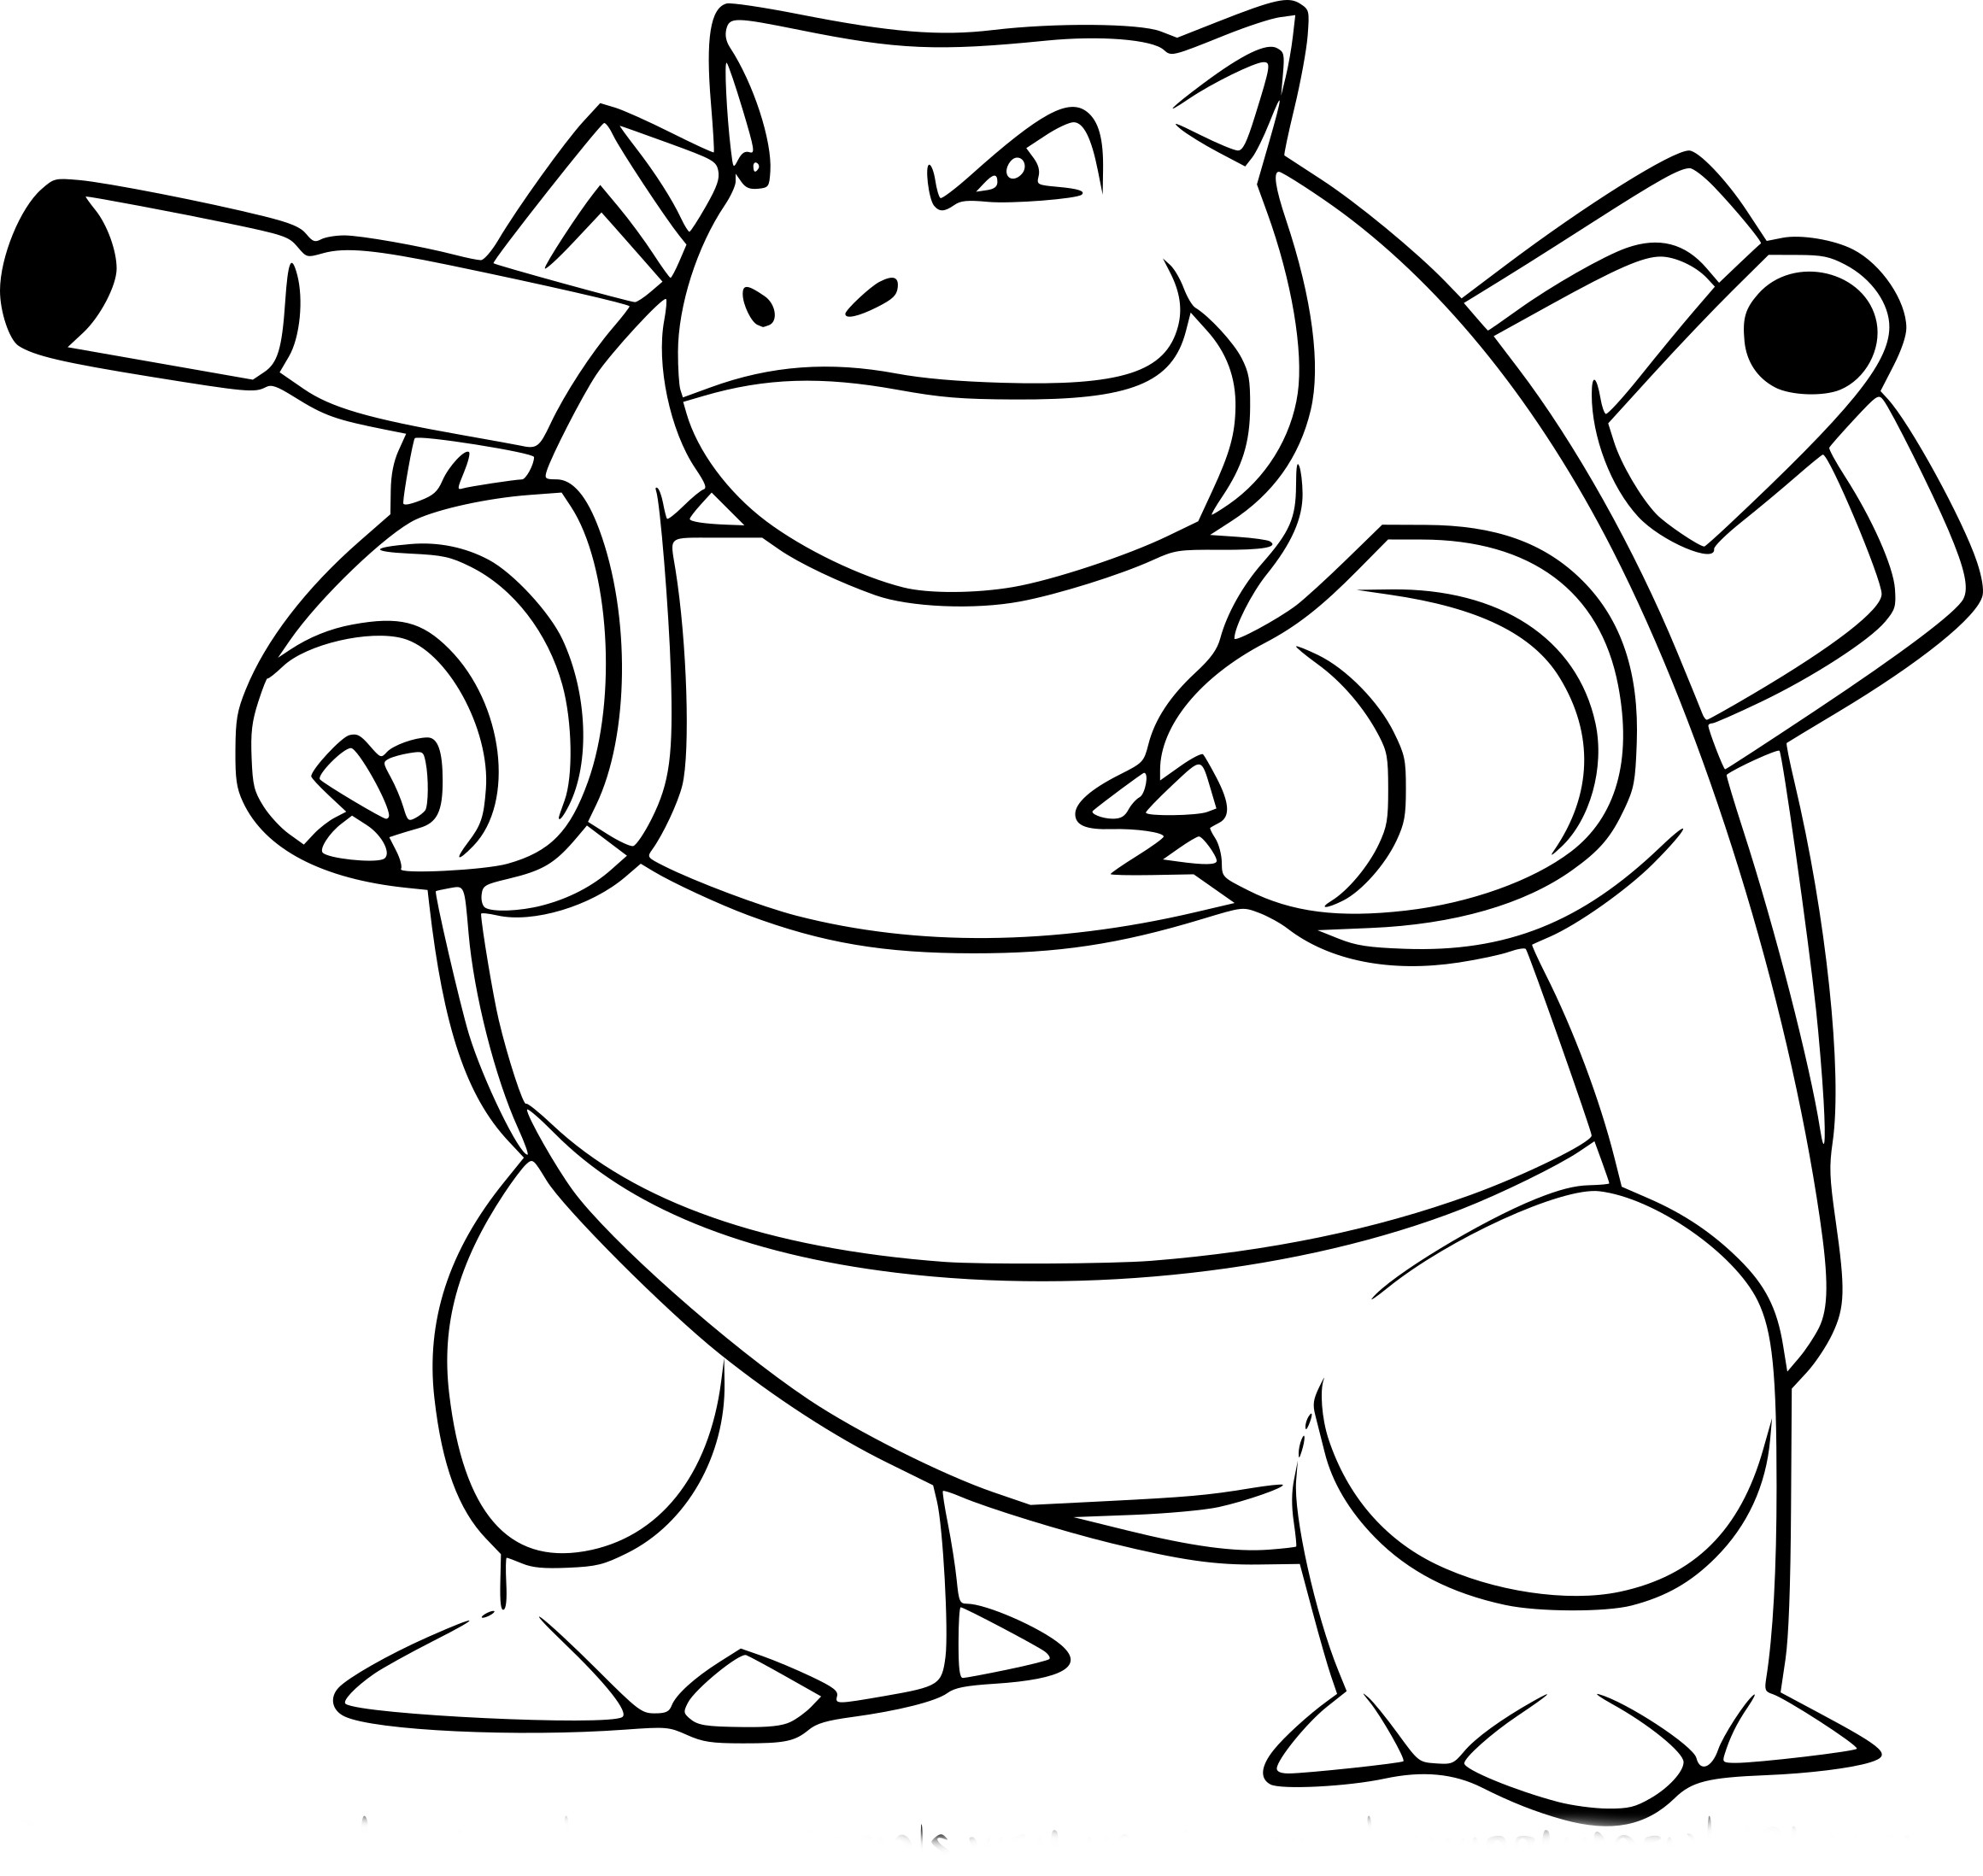 Coloriage tortank pokemon go imprimer - Coloriage de pokemon a imprimer ...